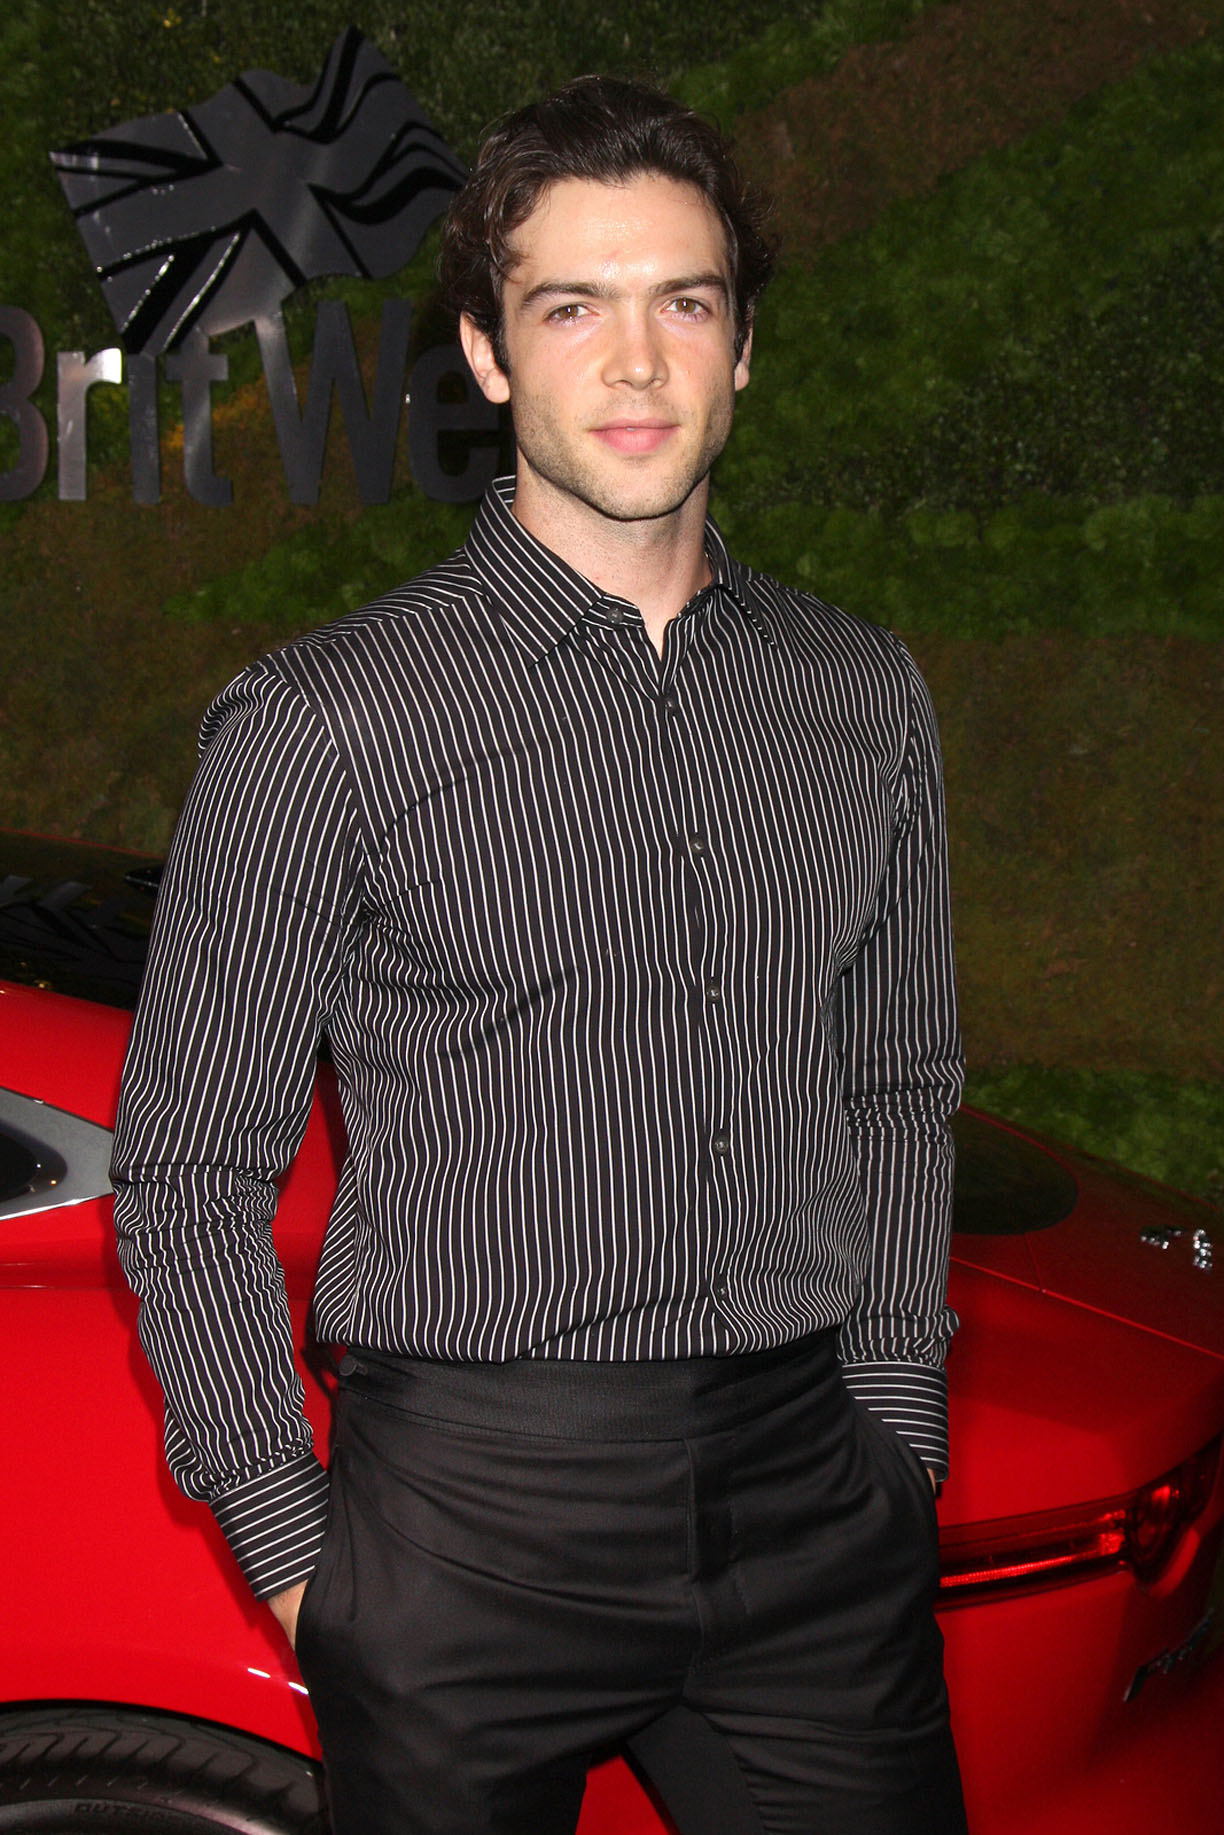 Ethan Peck is the grandson of Hollywood icon, Gregory Peck